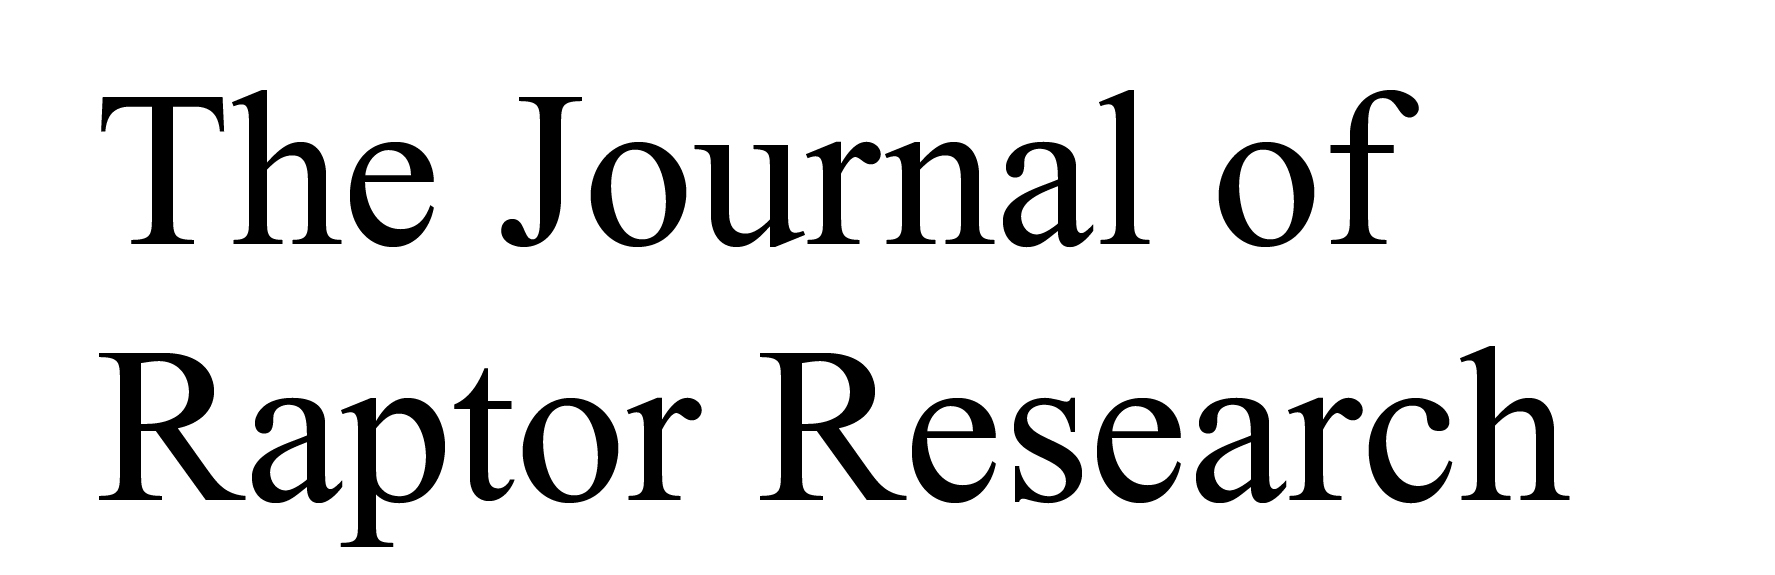 Journal of Raptor Research